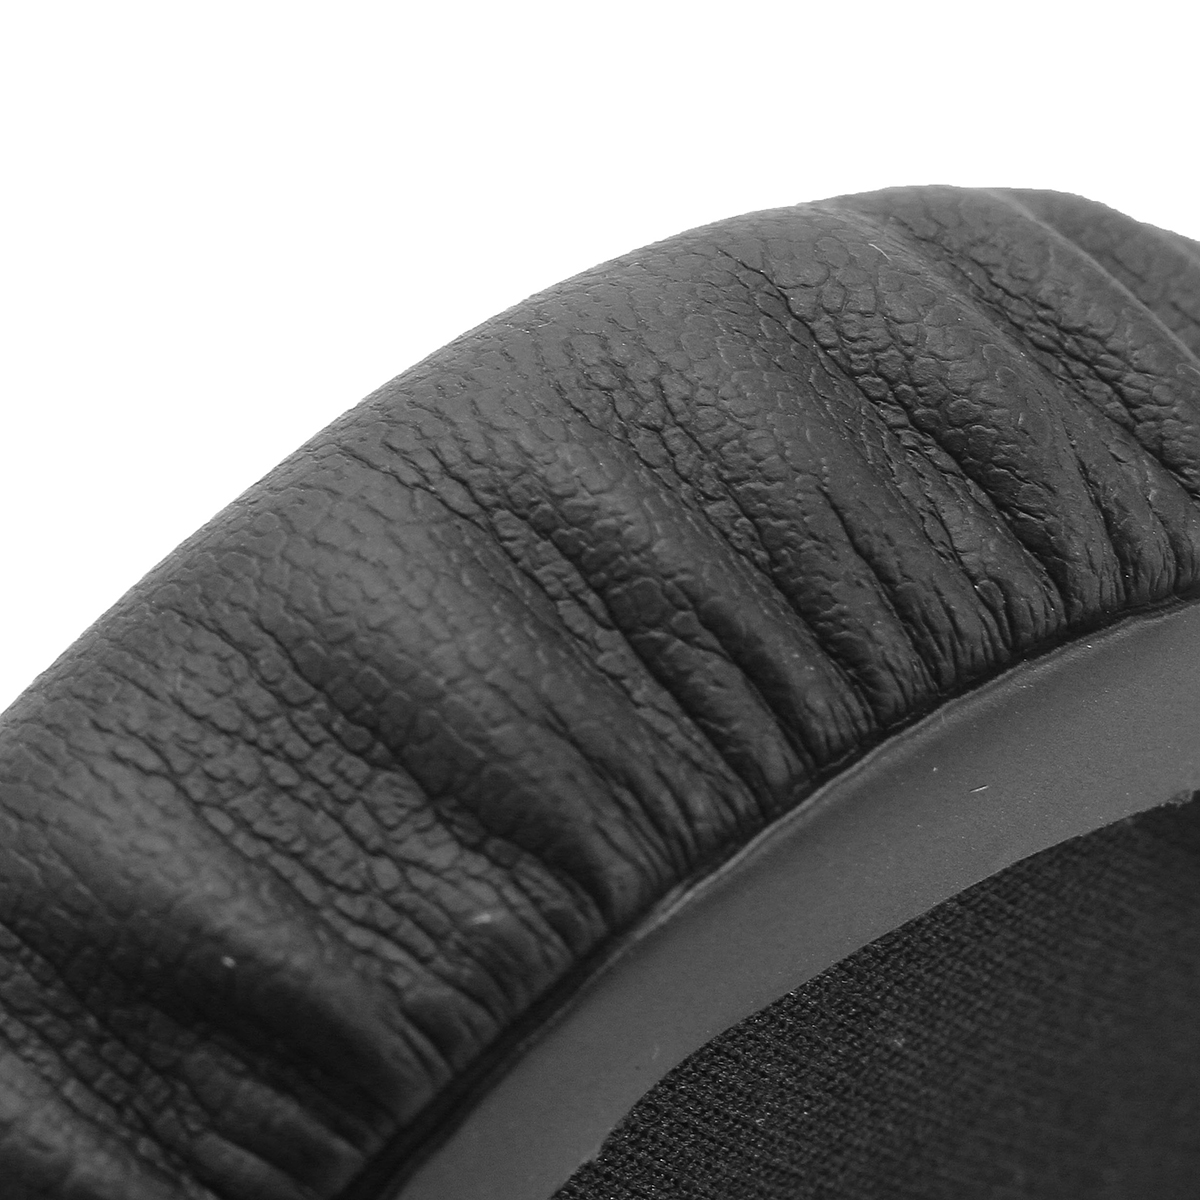 Replacement Headphone Earpads Cushion Cover Fit For JBL E40BT E40 S400 S400BT Headphones